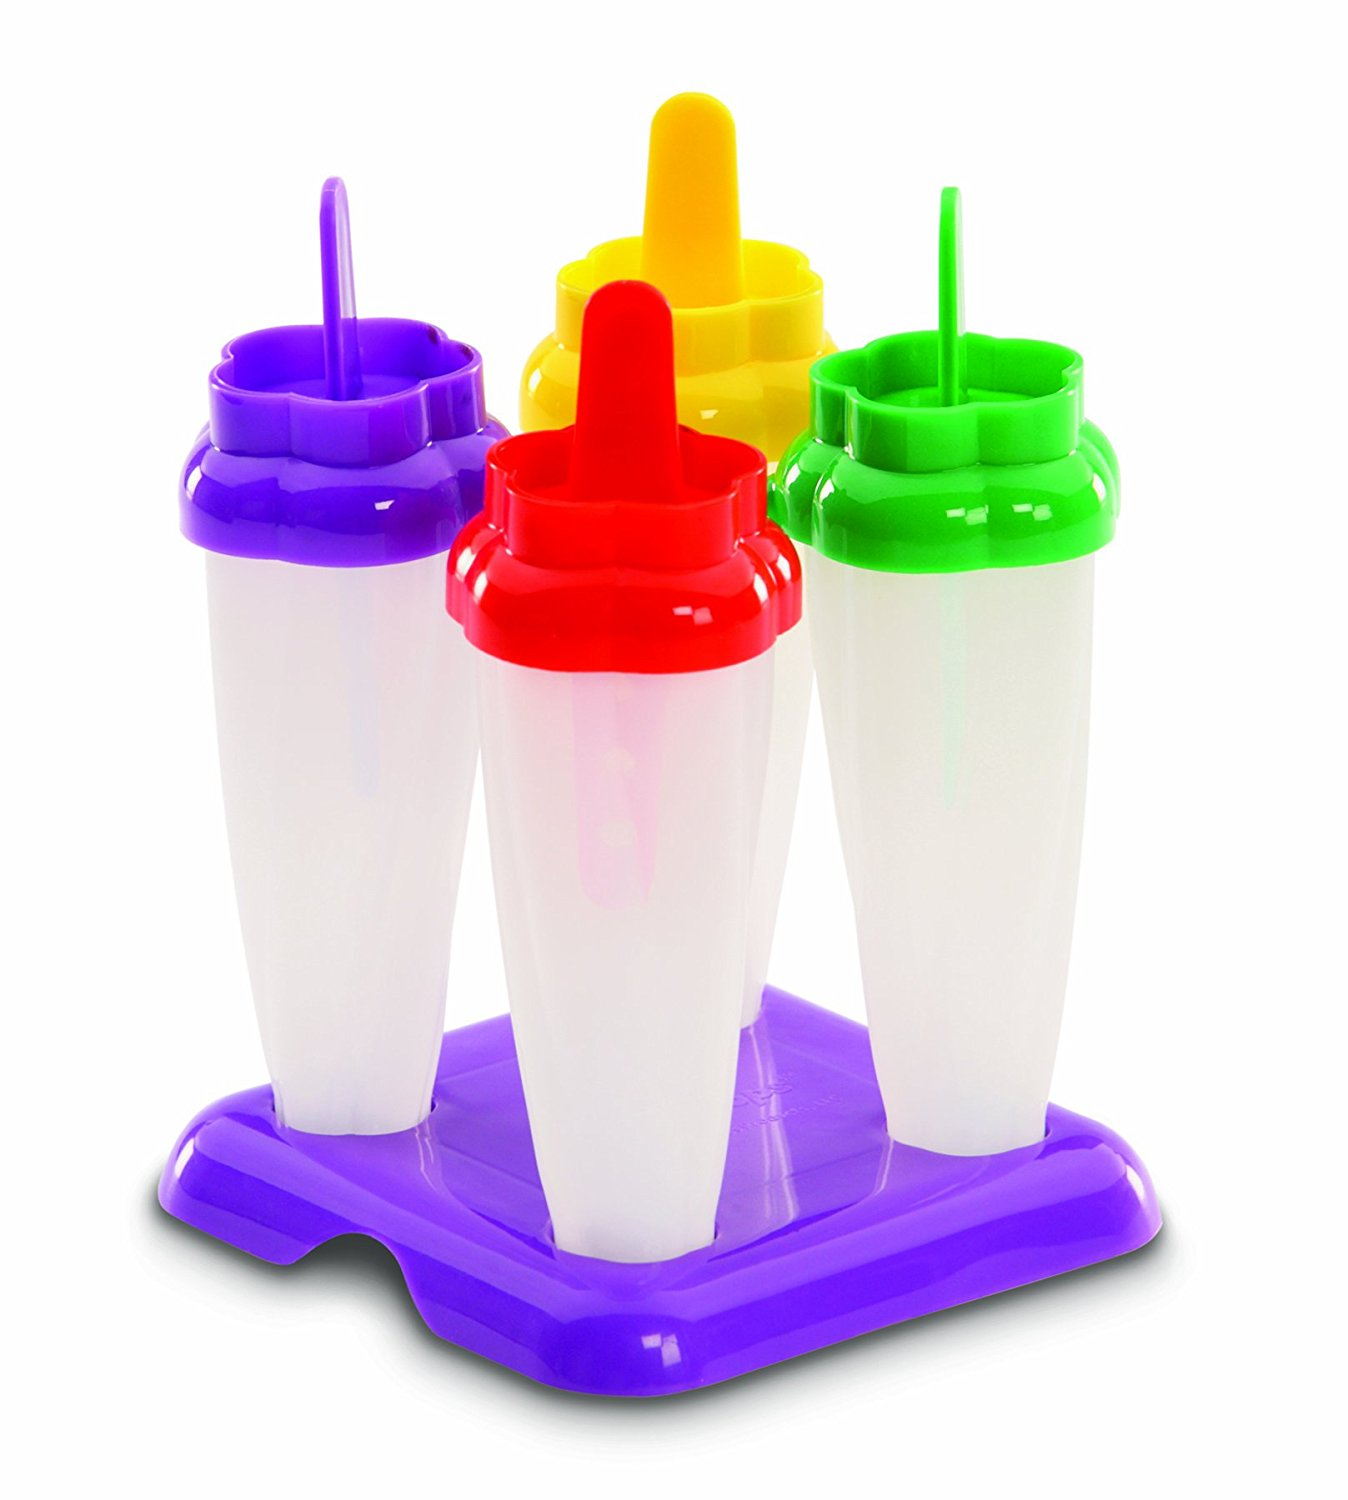 Jelly Belly Flute Pops Ice Mold, No-drip handles By West Bend